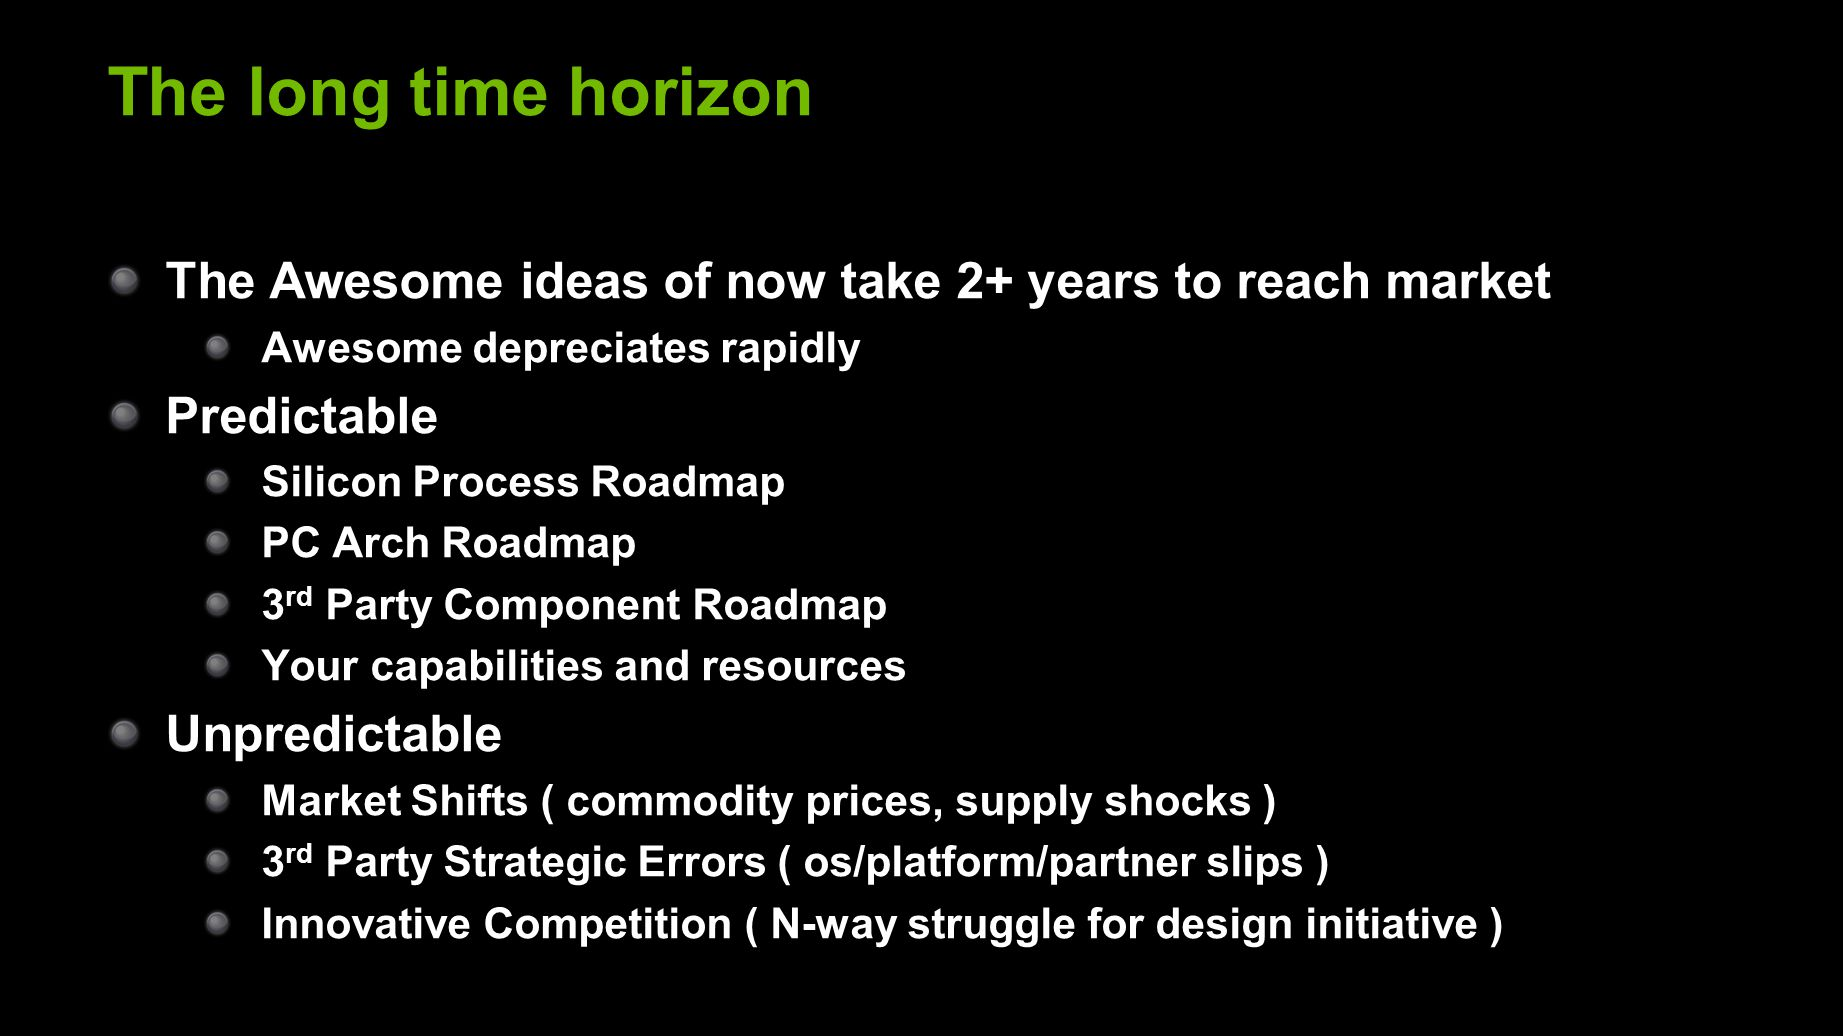 The long time horizon The Awesome ideas of now take 2+ years to reach market Awesome depreciates rapidly Predictable Silicon Process Roadmap PC Arch Roadmap 3 rd Party Component Roadmap Your capabilities and resources Unpredictable Market Shifts ( commodity prices, supply shocks ) 3 rd Party Strategic Errors ( os/platform/partner slips ) Innovative Competition ( N-way struggle for design initiative )